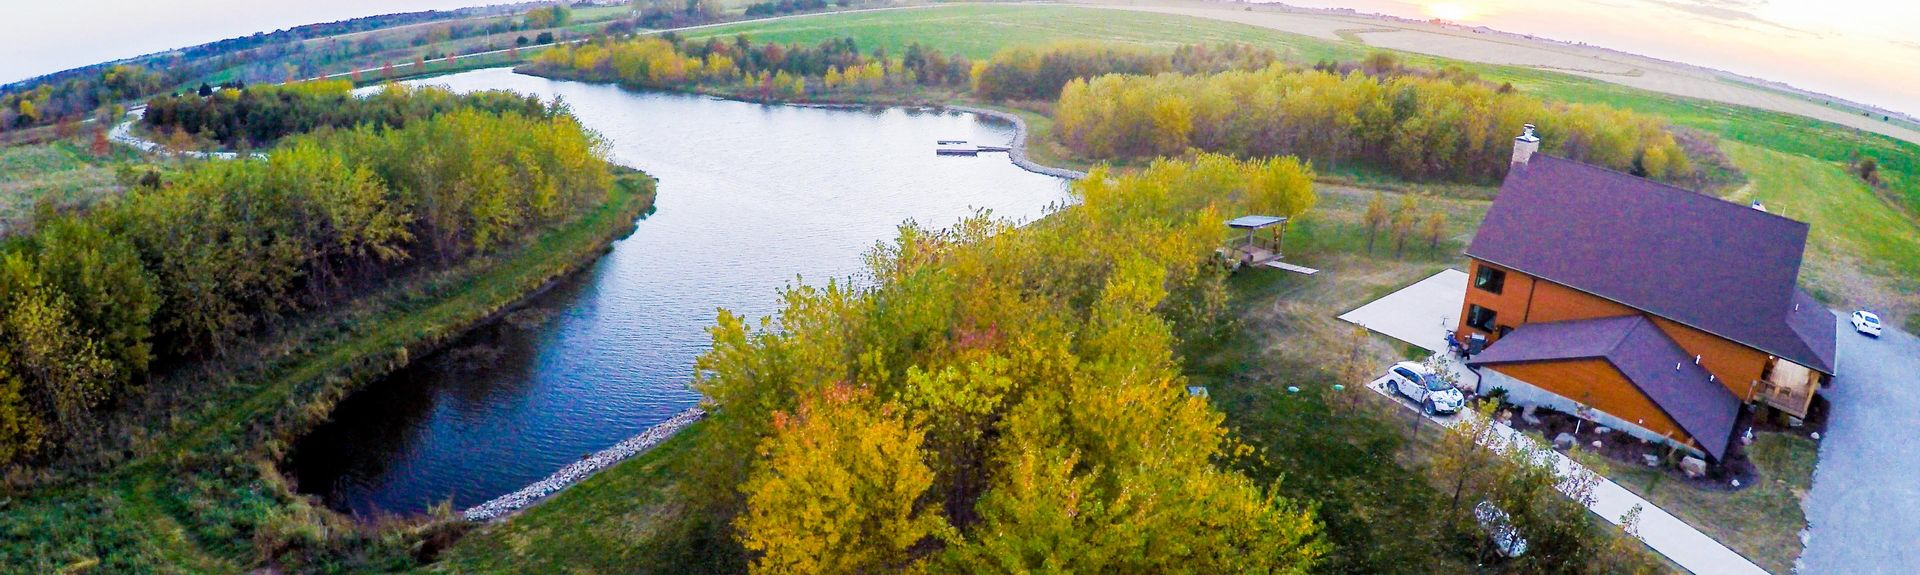 Rathbun Lake, Moravia, Iowa, United States of America